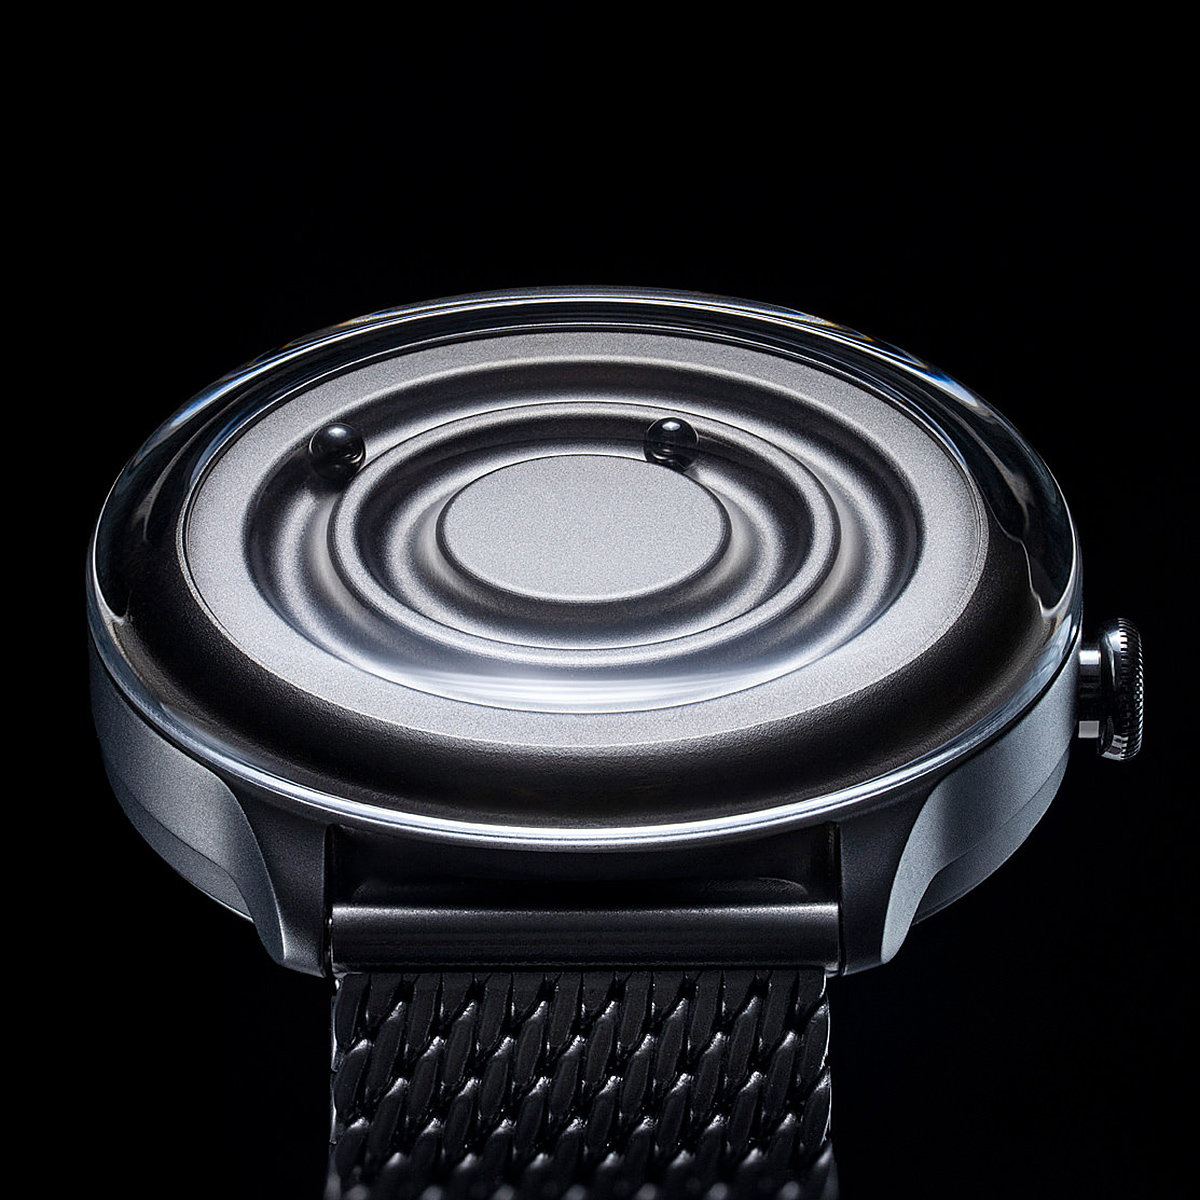 ZIIIRO Launches Jupiter Timepiece